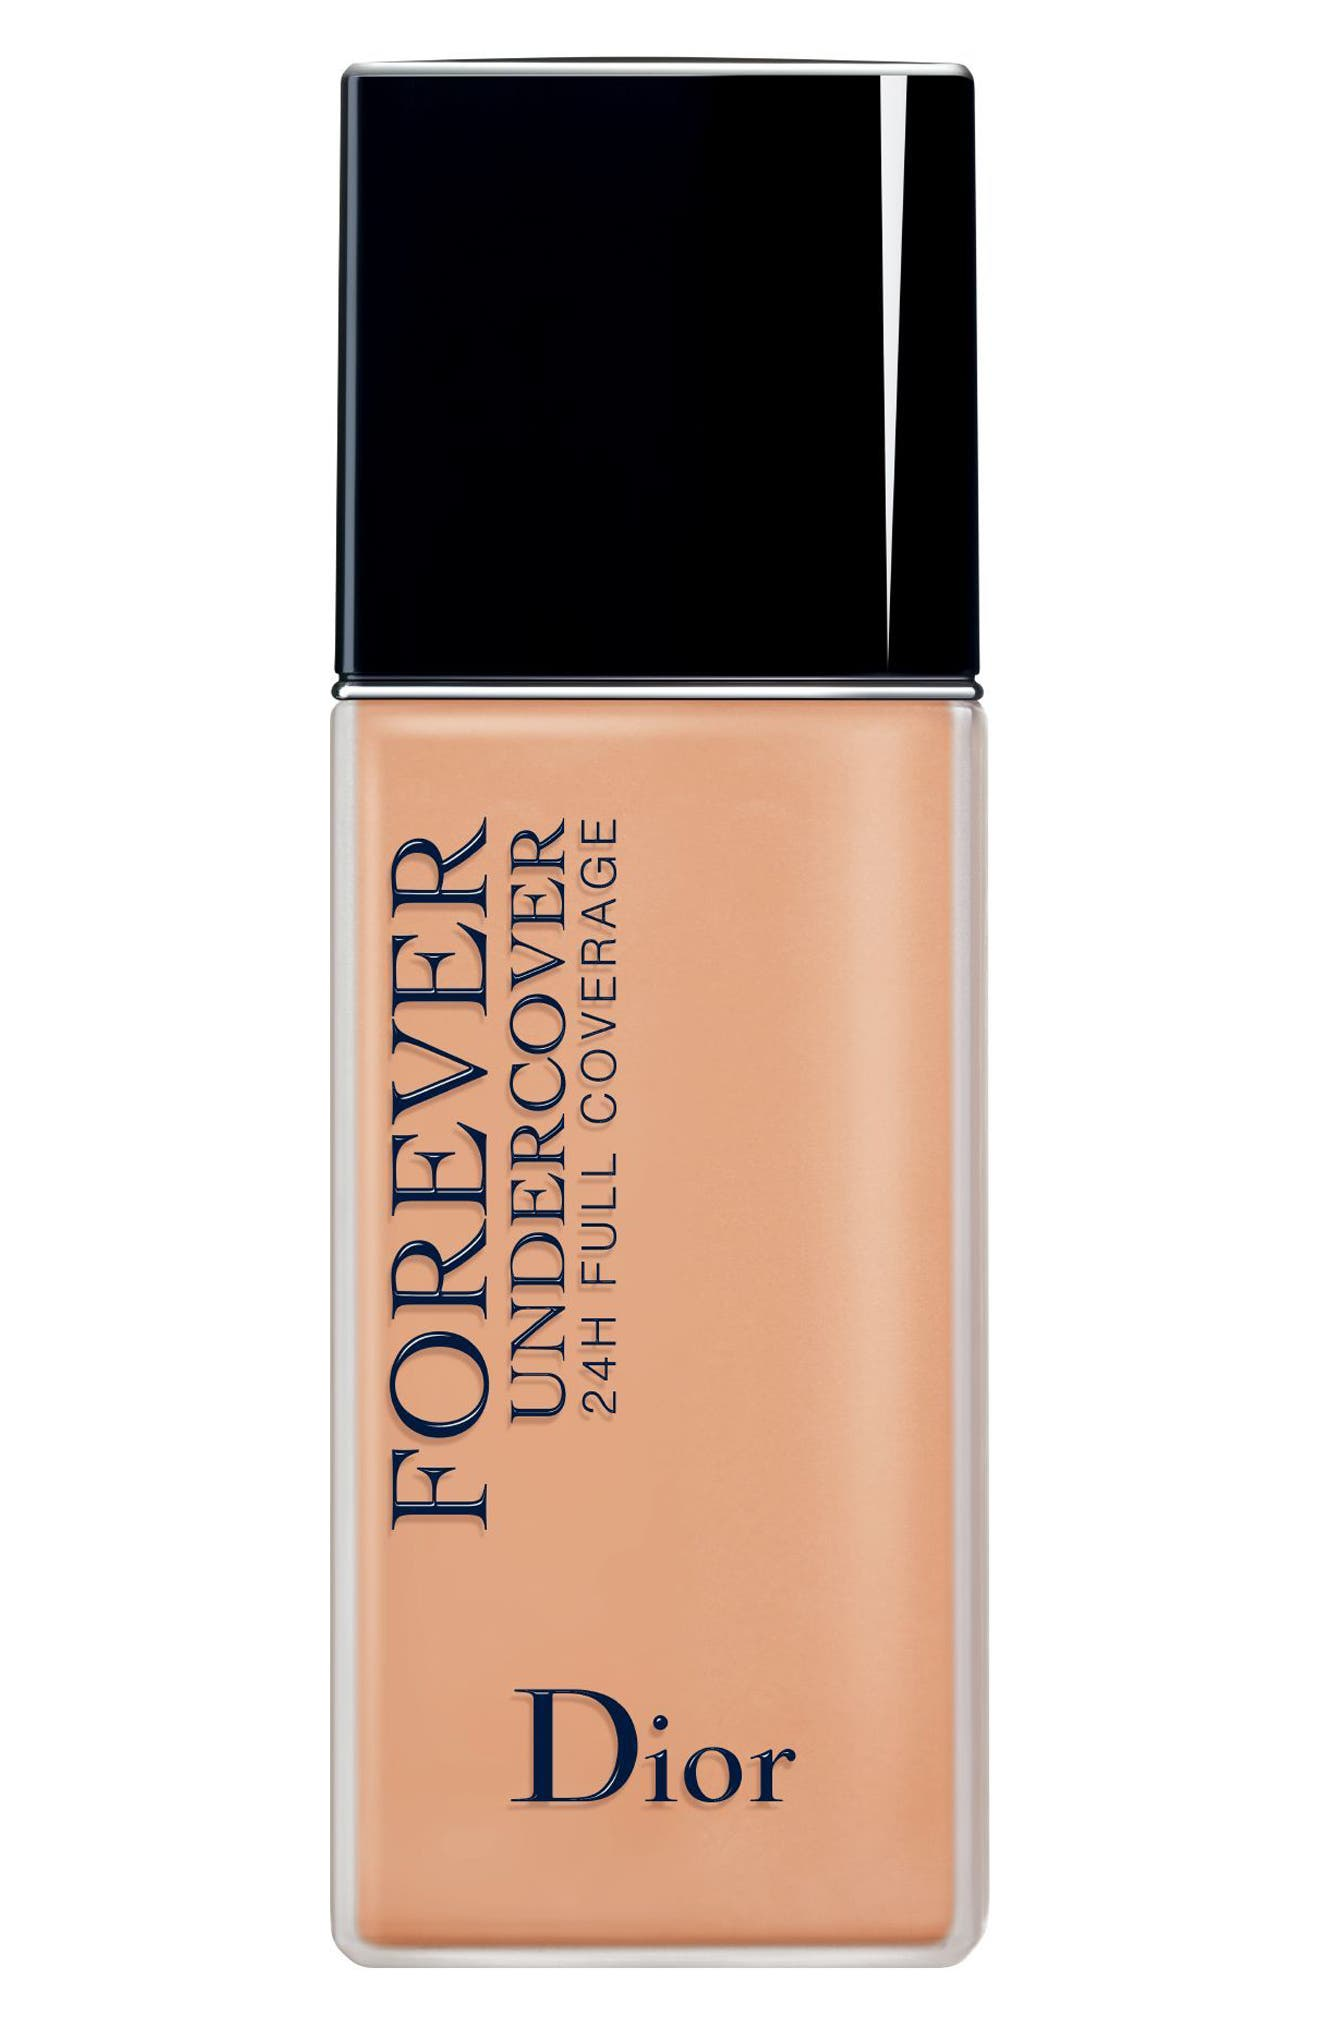 Dior Diorskin Forever Undercover 24-Hour Full Coverage Water-Based Foundation - 040 Honey Beige